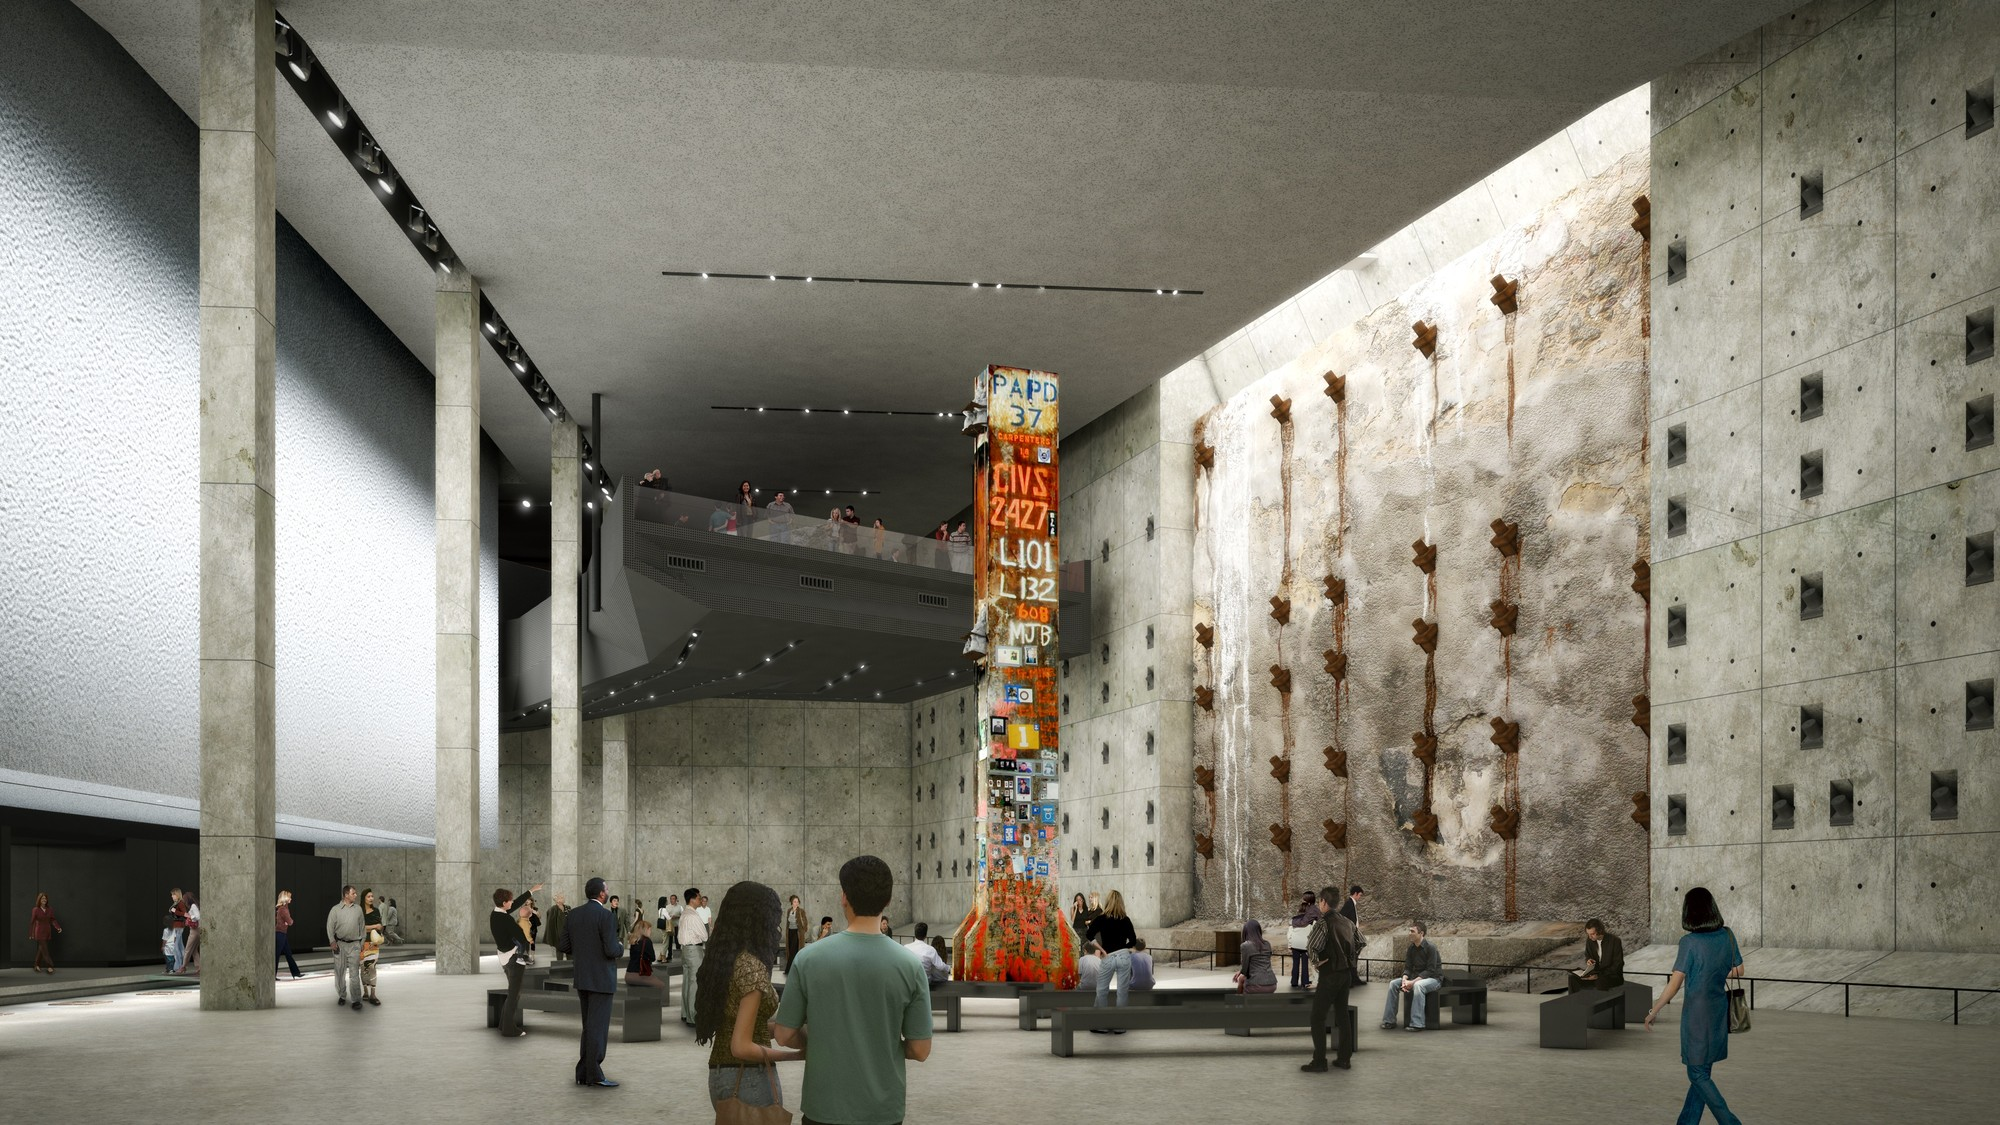 Davis Brody Bond Releases New Details of the 9/11 Memorial Museum, Design Study for Foundation Hall featuring the Last Column. Image © Red Square Design